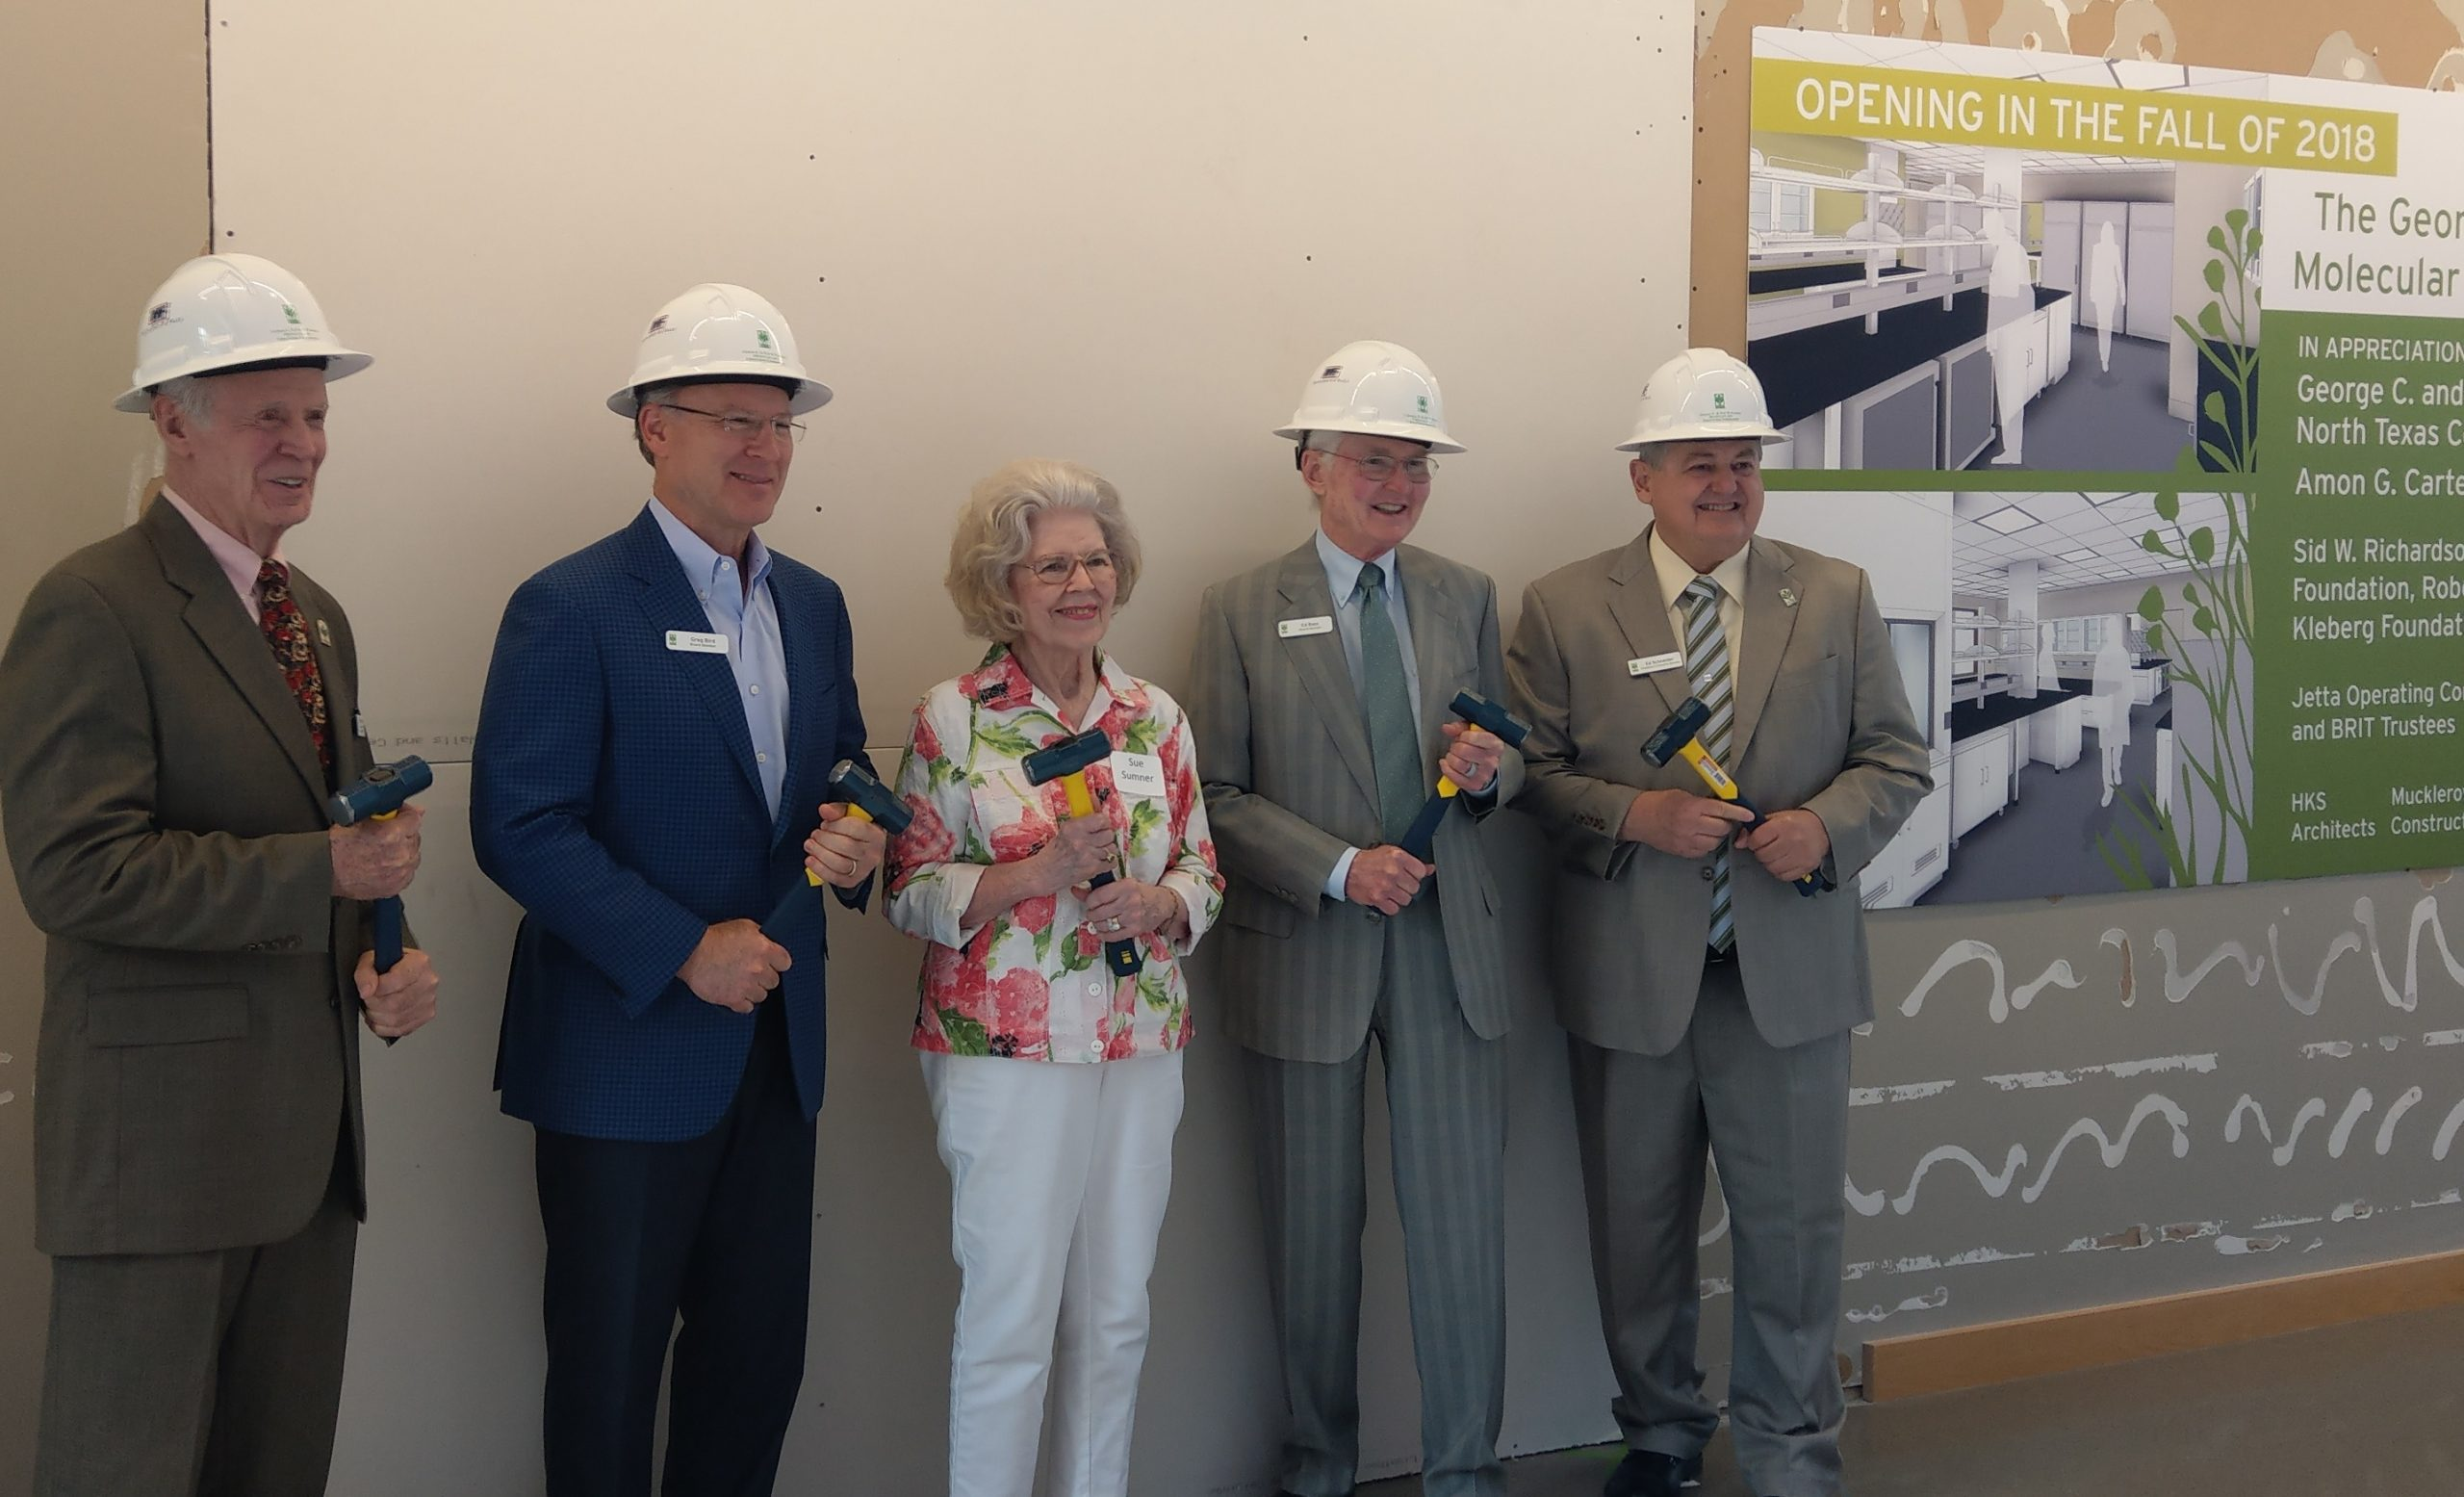 In August 2018, BRIT celebrated the beginning of construction of their upcoming Molecular Lab. The lab will help establish BRIT as a top-tier plant research and education organization. Executive Director and President Edward Schneider is on the far right.